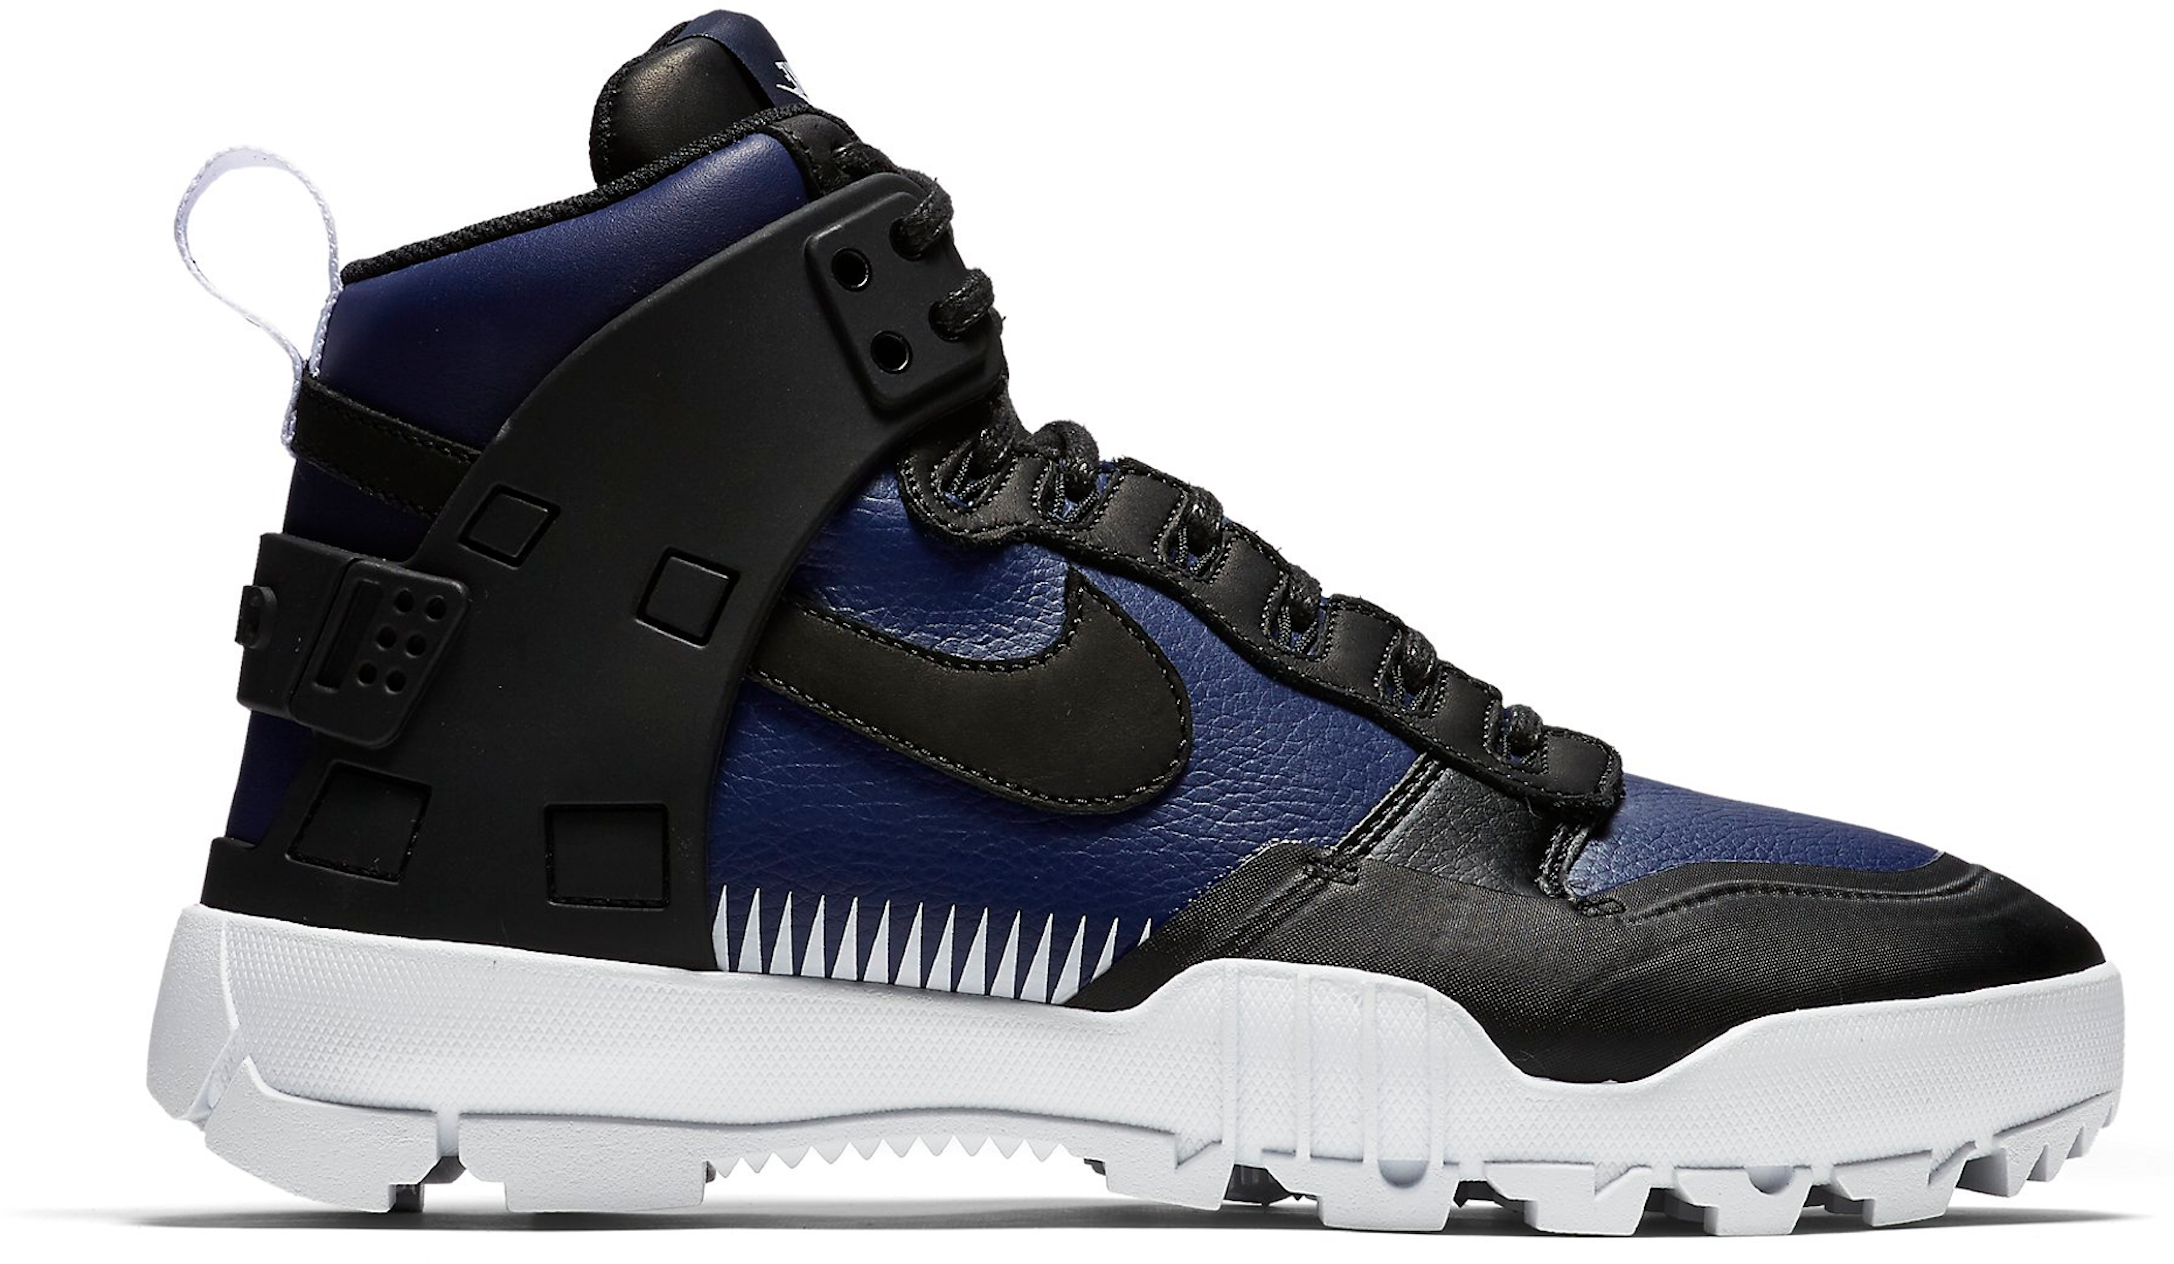 Nike SFB Jungle Dunk Undercover Black